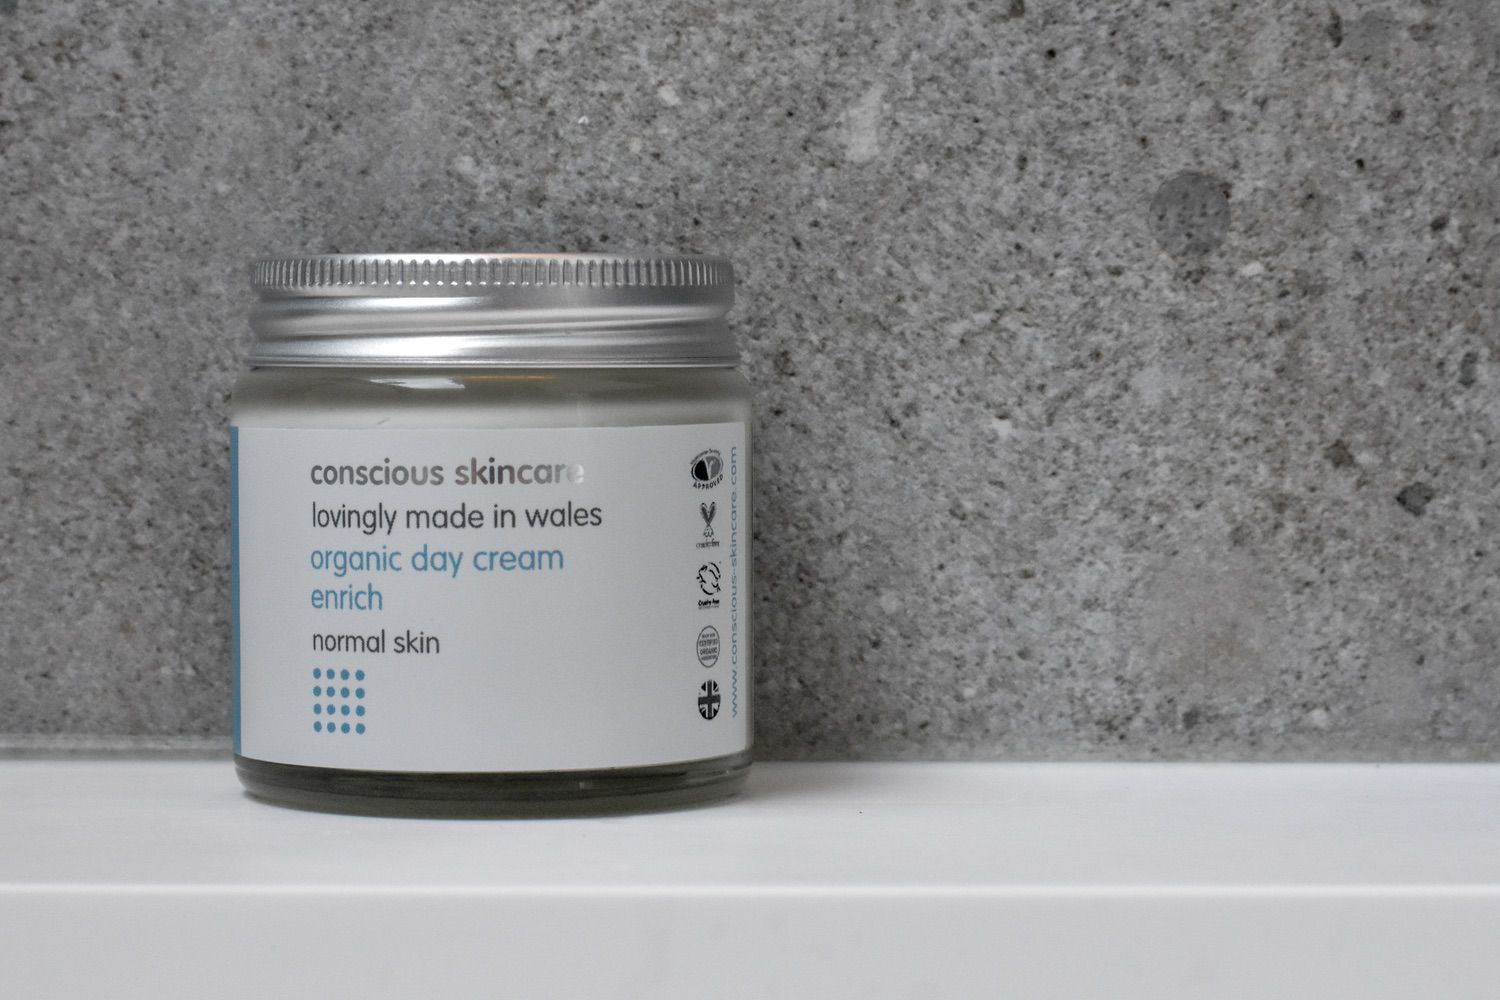 conscious skincare - This brand is a new discovery for me. I was trying to find some plastic-free, natural skincare products that were specifically for men and bumped into Conscious Skincare.Whilst the brand isn't just for men, they have a specially curated section of products that are recommended for men's skin. All the products are made in small batches to ensure optimum freshness (therefore potency) of the carefully selected, natural ingredients. And whilst the range isn't entirely plastic-free, much of it is, and their general approach to sustainable packaging is admirable.So far, this little pot is the only one in our bathroom. But if this one is anything to go by, my hunch is we'll be adding more.